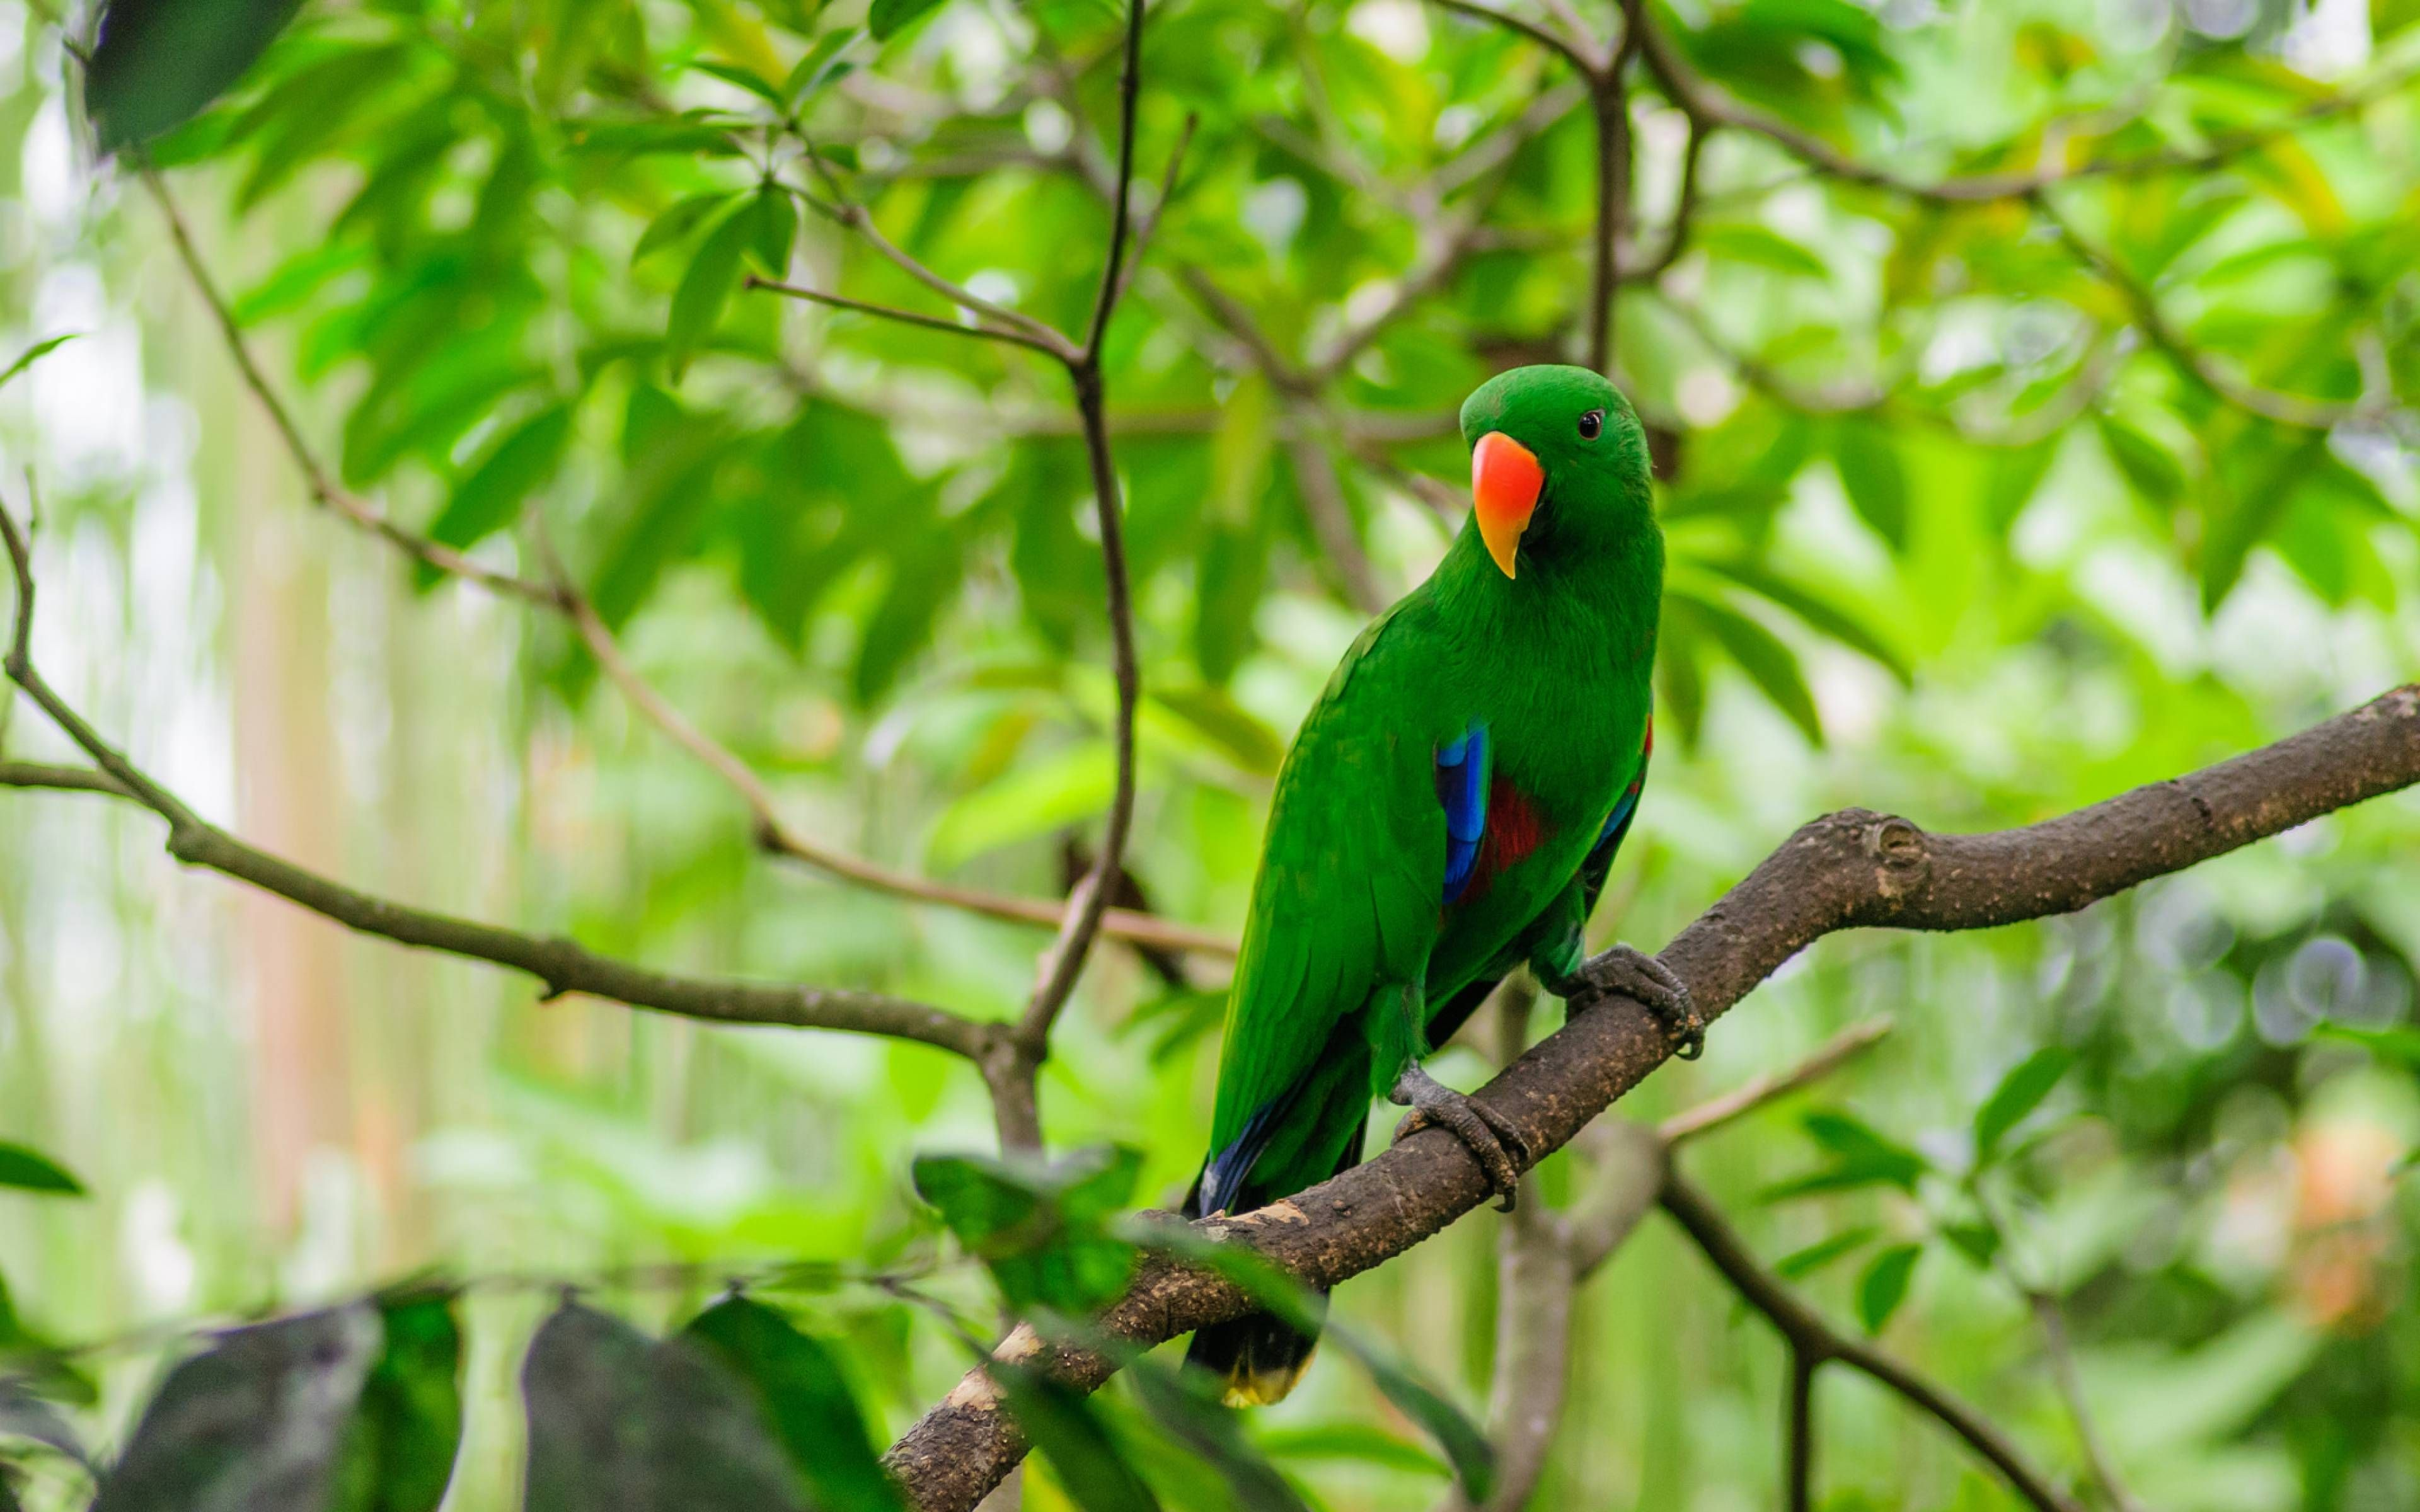 Green Parrot Sitting On The Branch Of A Tree 3840 X 2400 Wallpaper Parrot Image Bird Pictures Funny Animal Memes